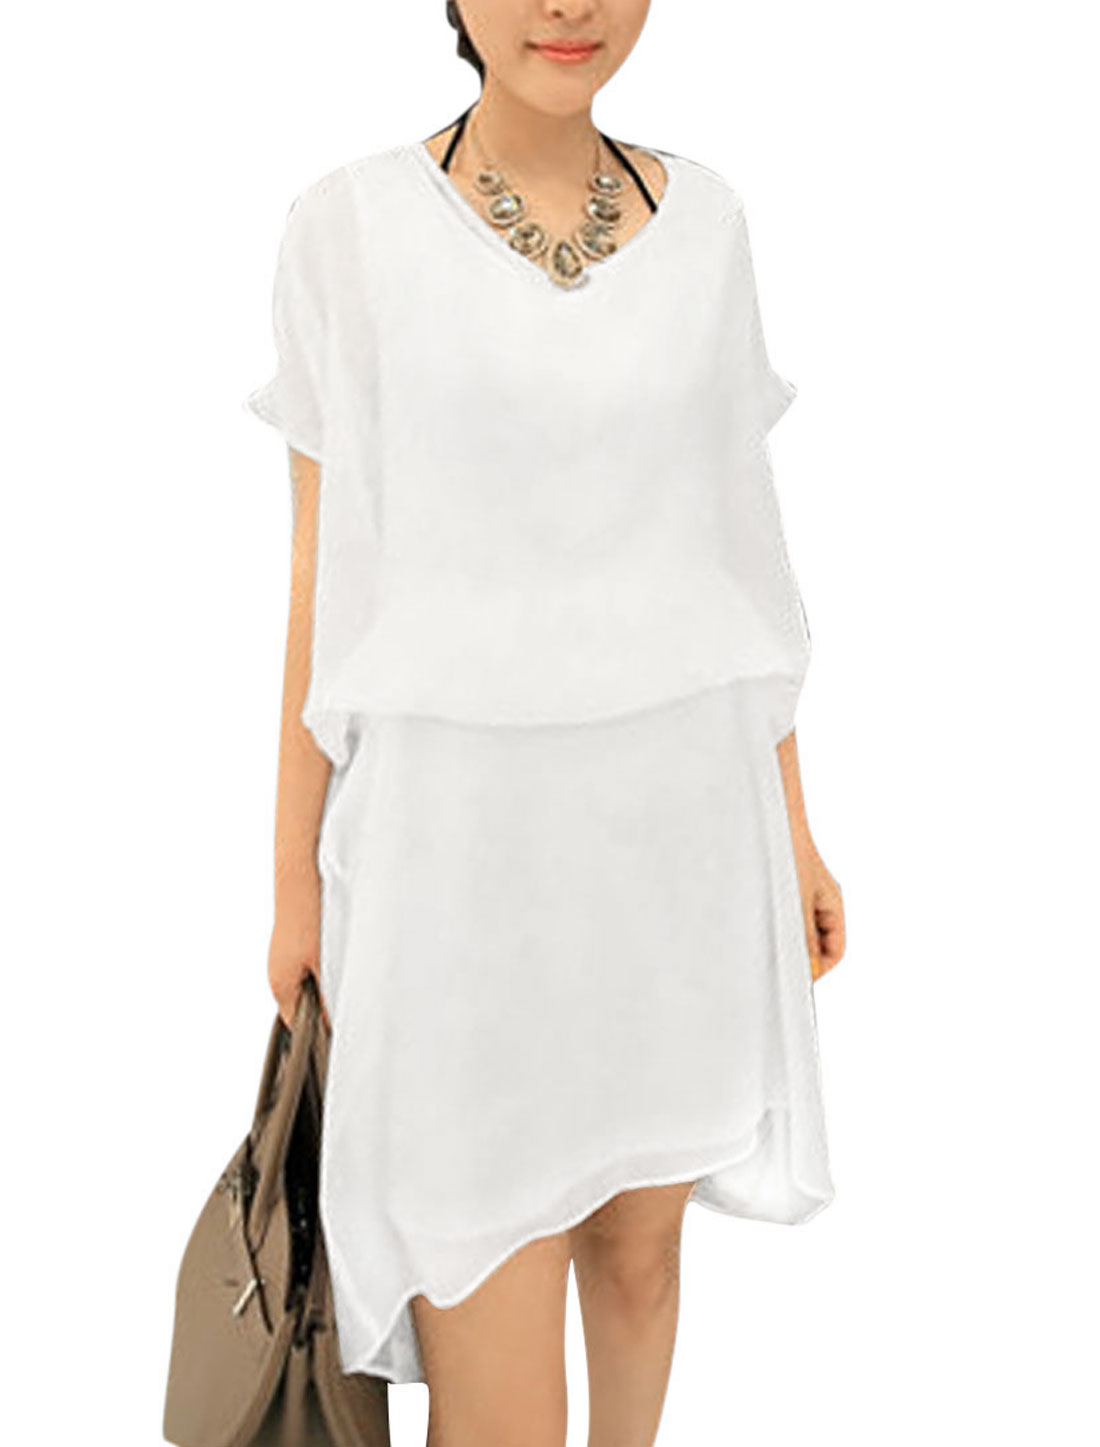 Ladies Splice Short Sleeves Fake Two Pieces Chic Dress White XS